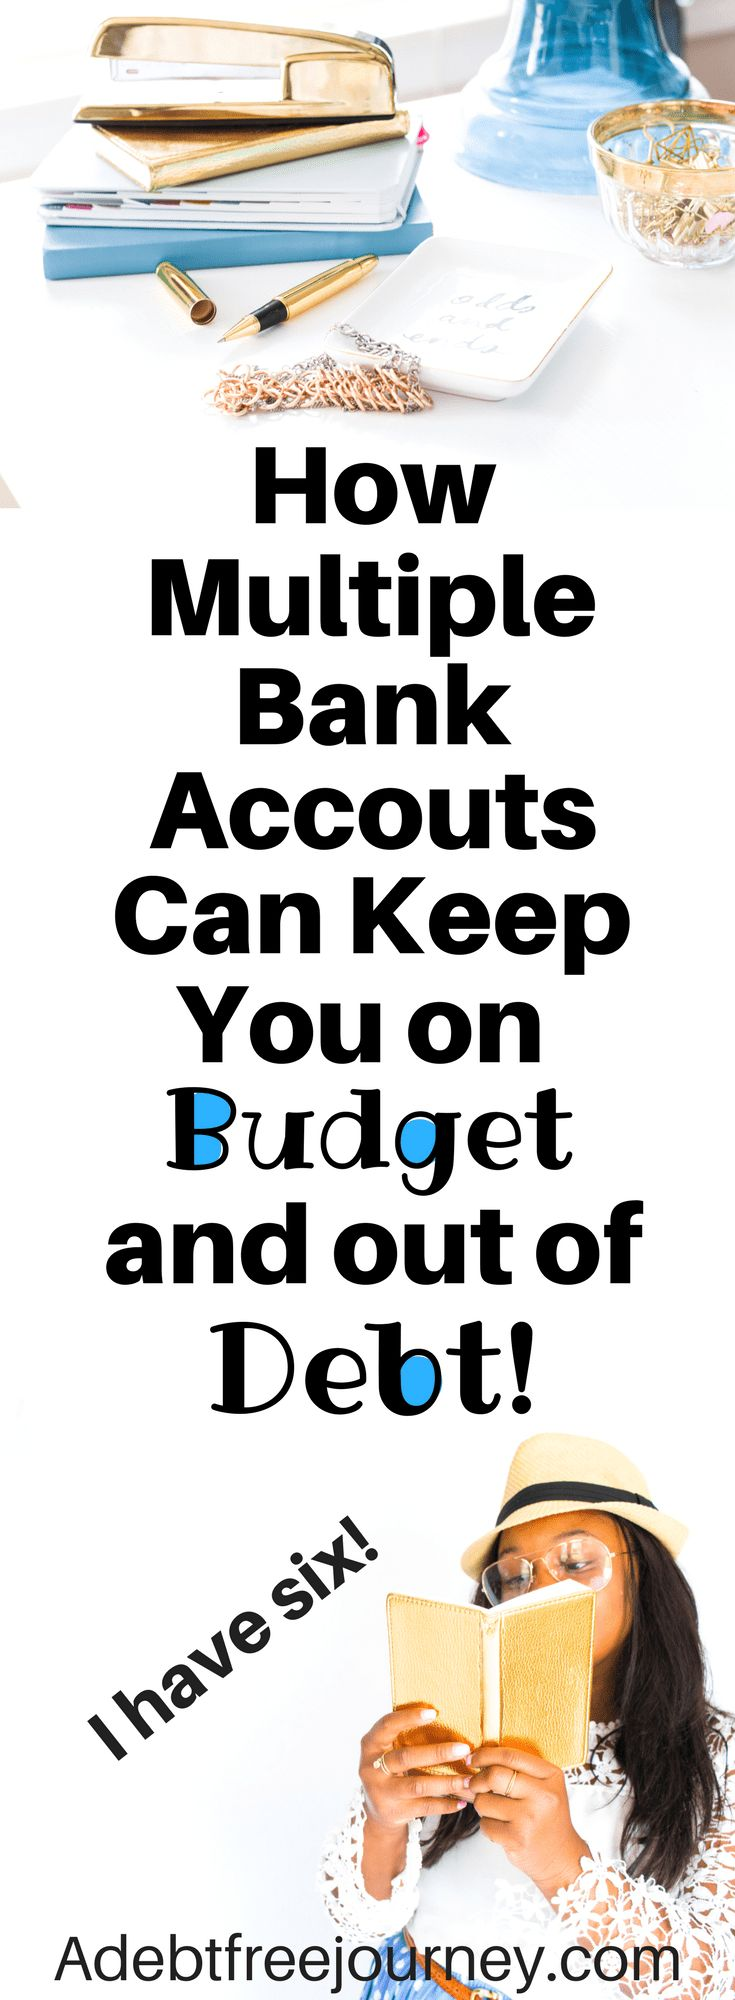 The thought of having multiple bank accounts may seem intimidating, but it makes managing your money so much easier! Find out how multiple bank accounts can help you stay on budget and out of debt. #multiplebankaccounts #stayonbudget #stayoutofdebt